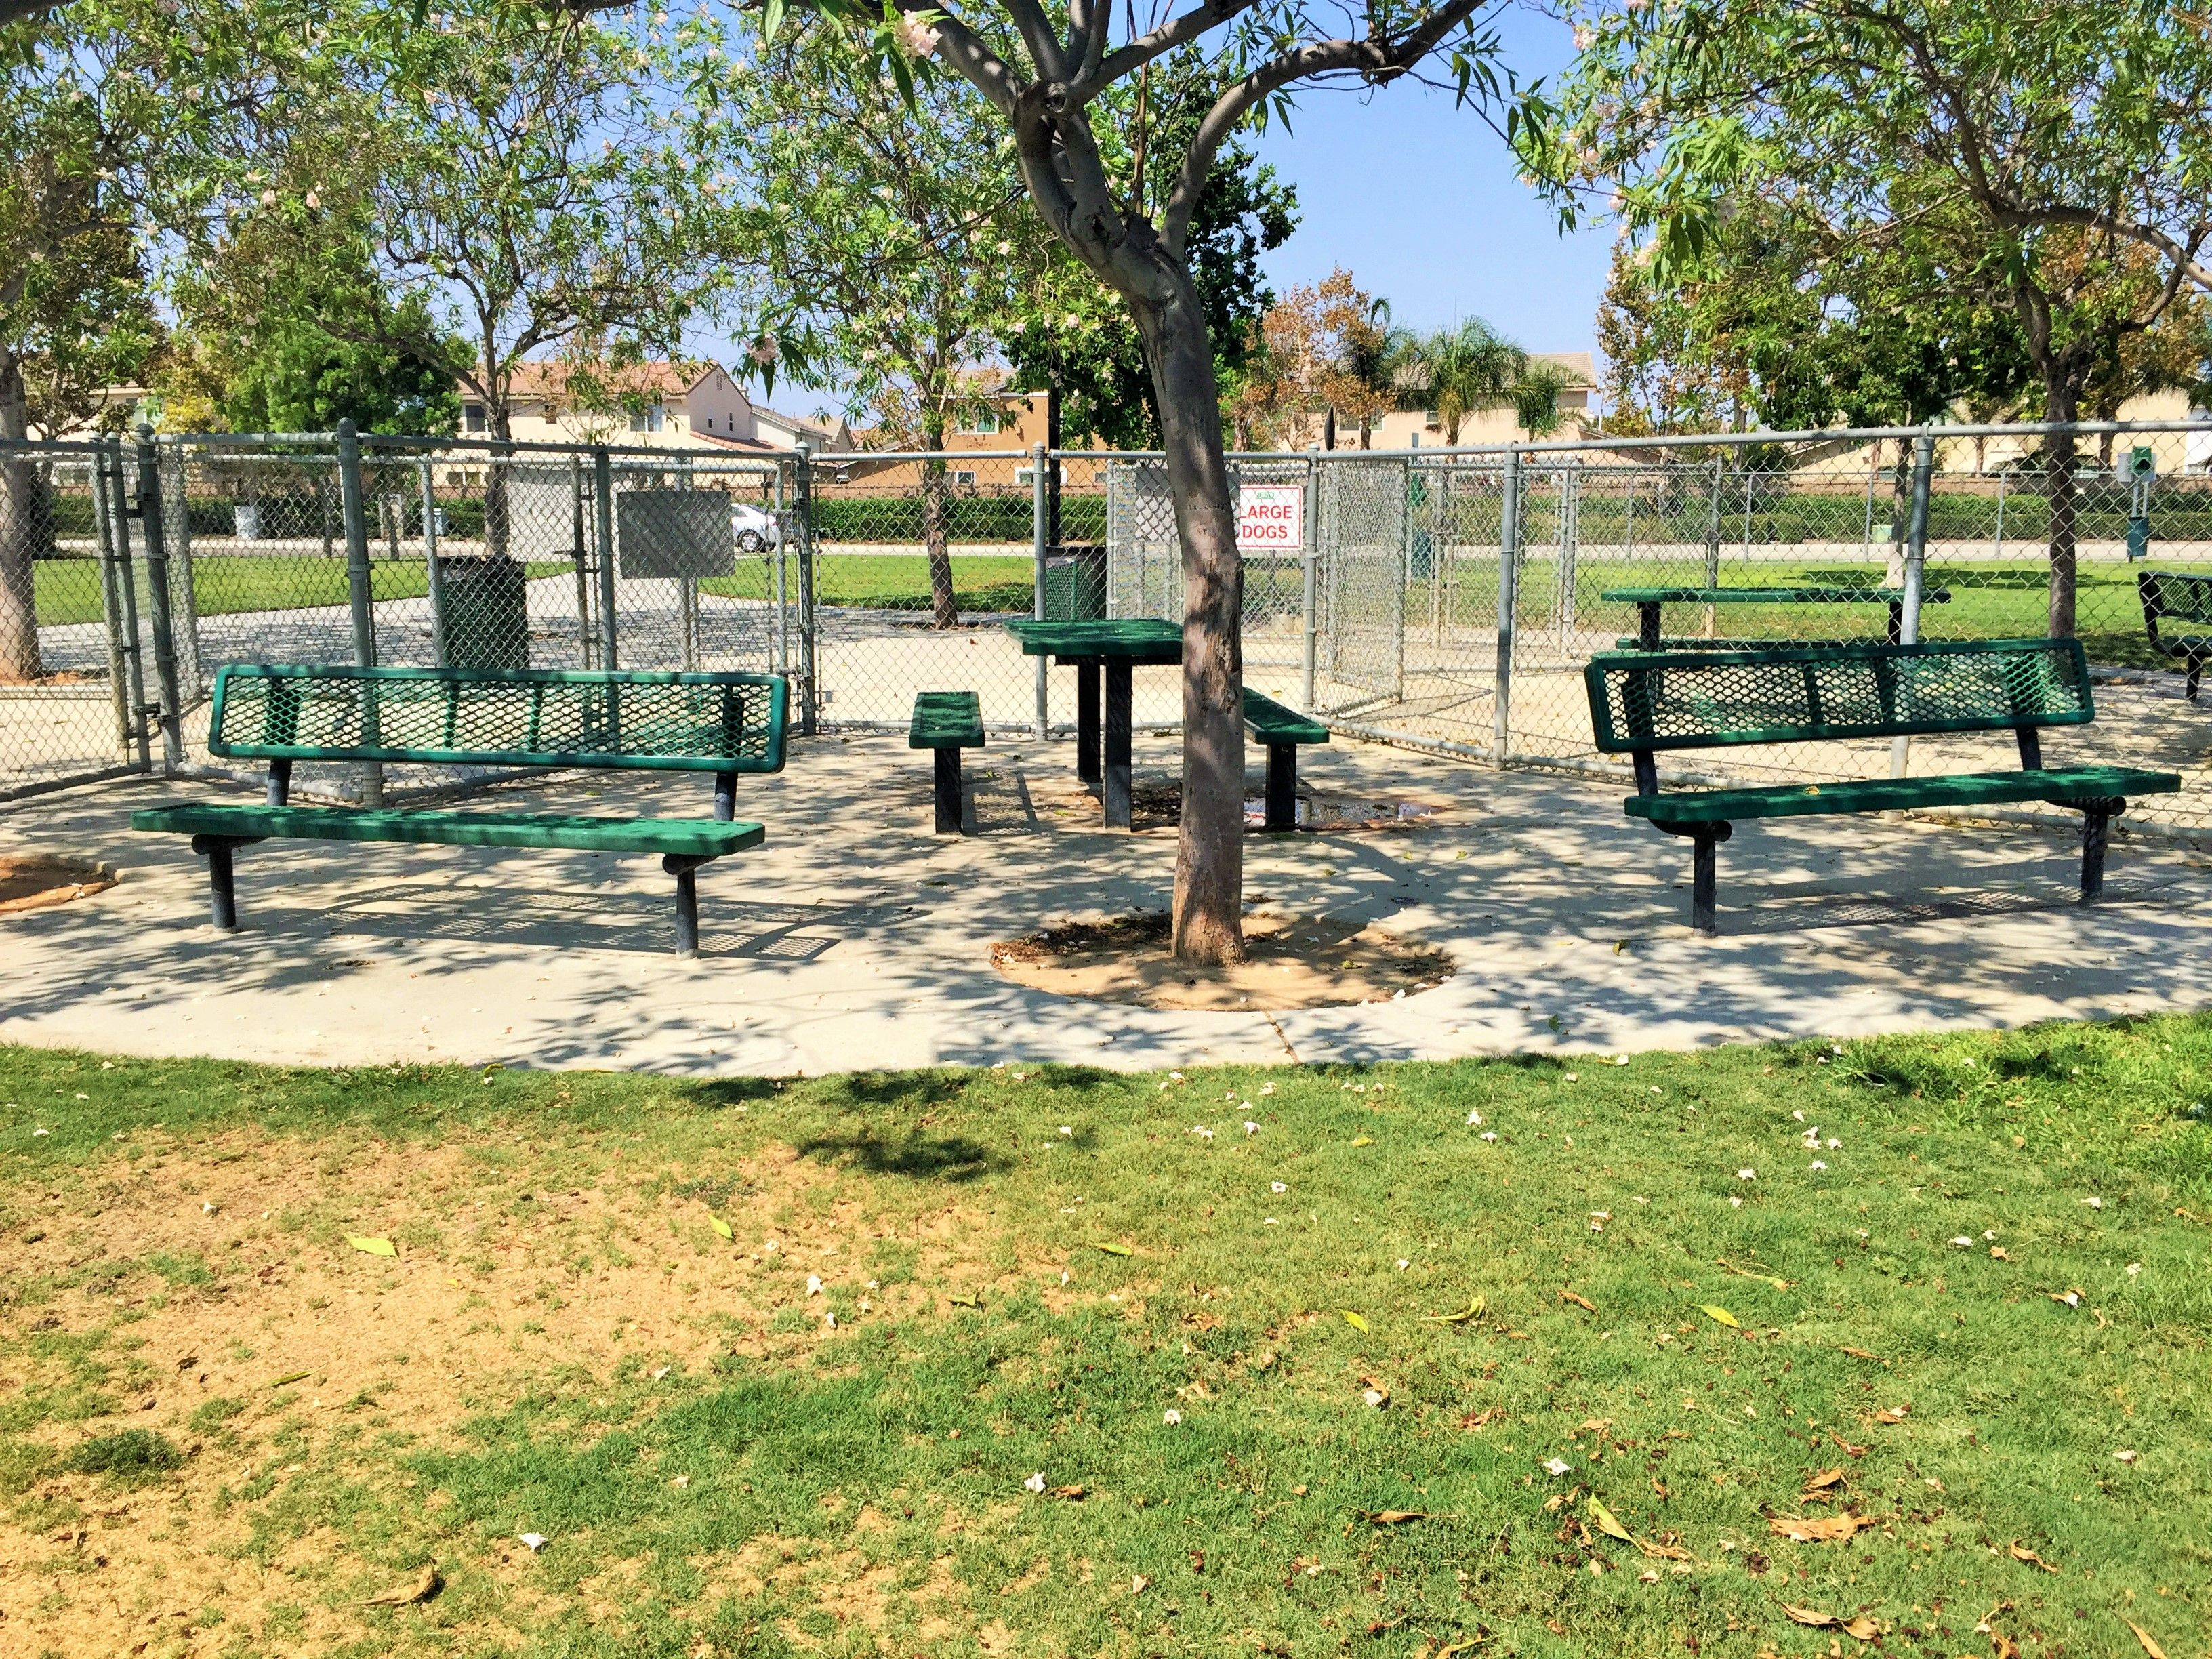 The sitting area inside the dog park for small dogs at Harada Heritage Park in Eastvale, California. http://youreastvalerealtor.com/eastvale-parks/